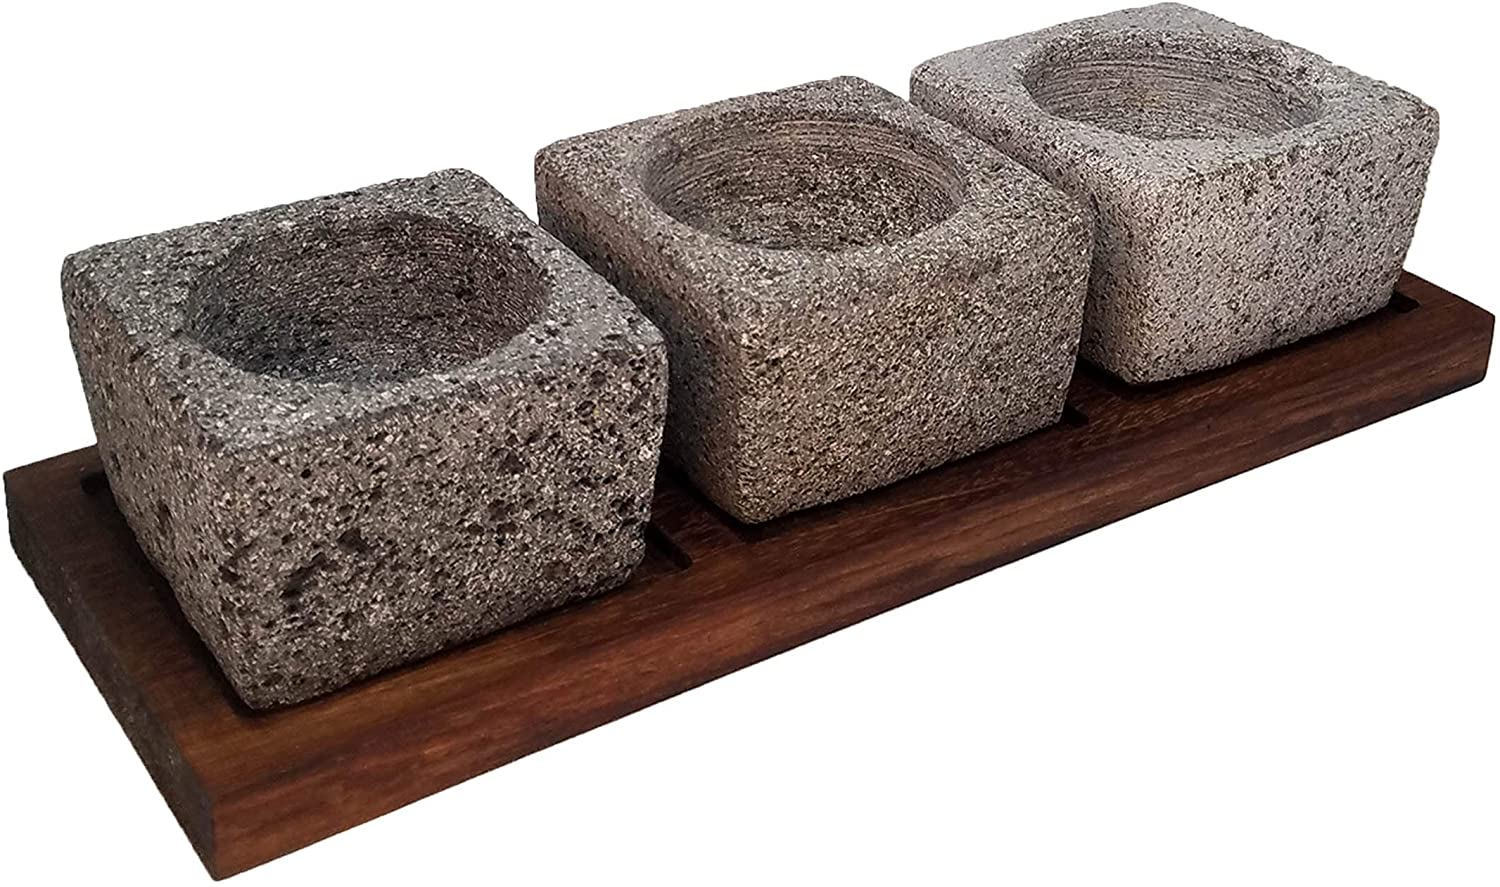 VOLCANIC ROCK PRODUCTS / Set-of-3-Small-4''-Mortars-with-Parota-Wood-Serving-Board / Surprise your guests with this handcrafted set of 3 small mortars with included wood board.